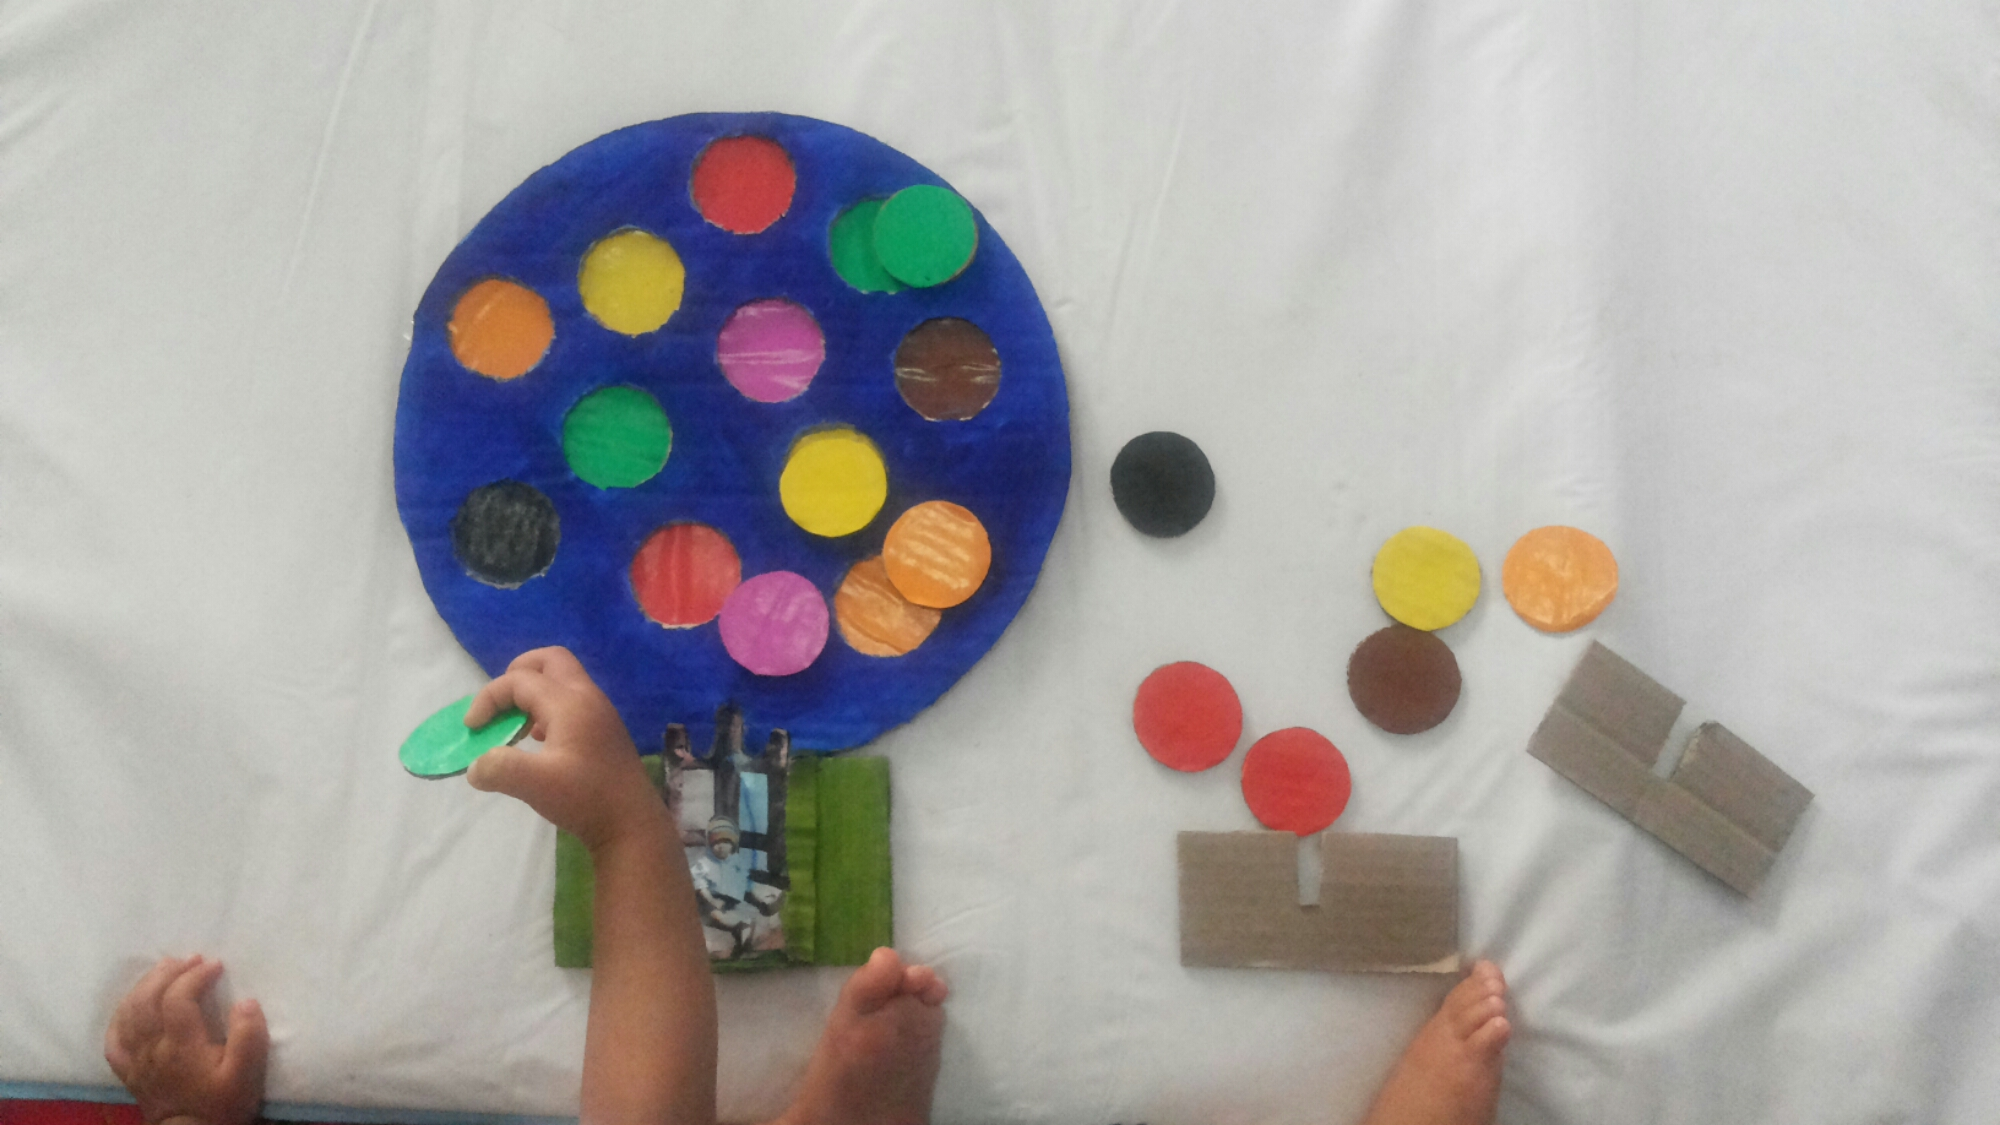 Color Hot Baloon Puzzle with Frame